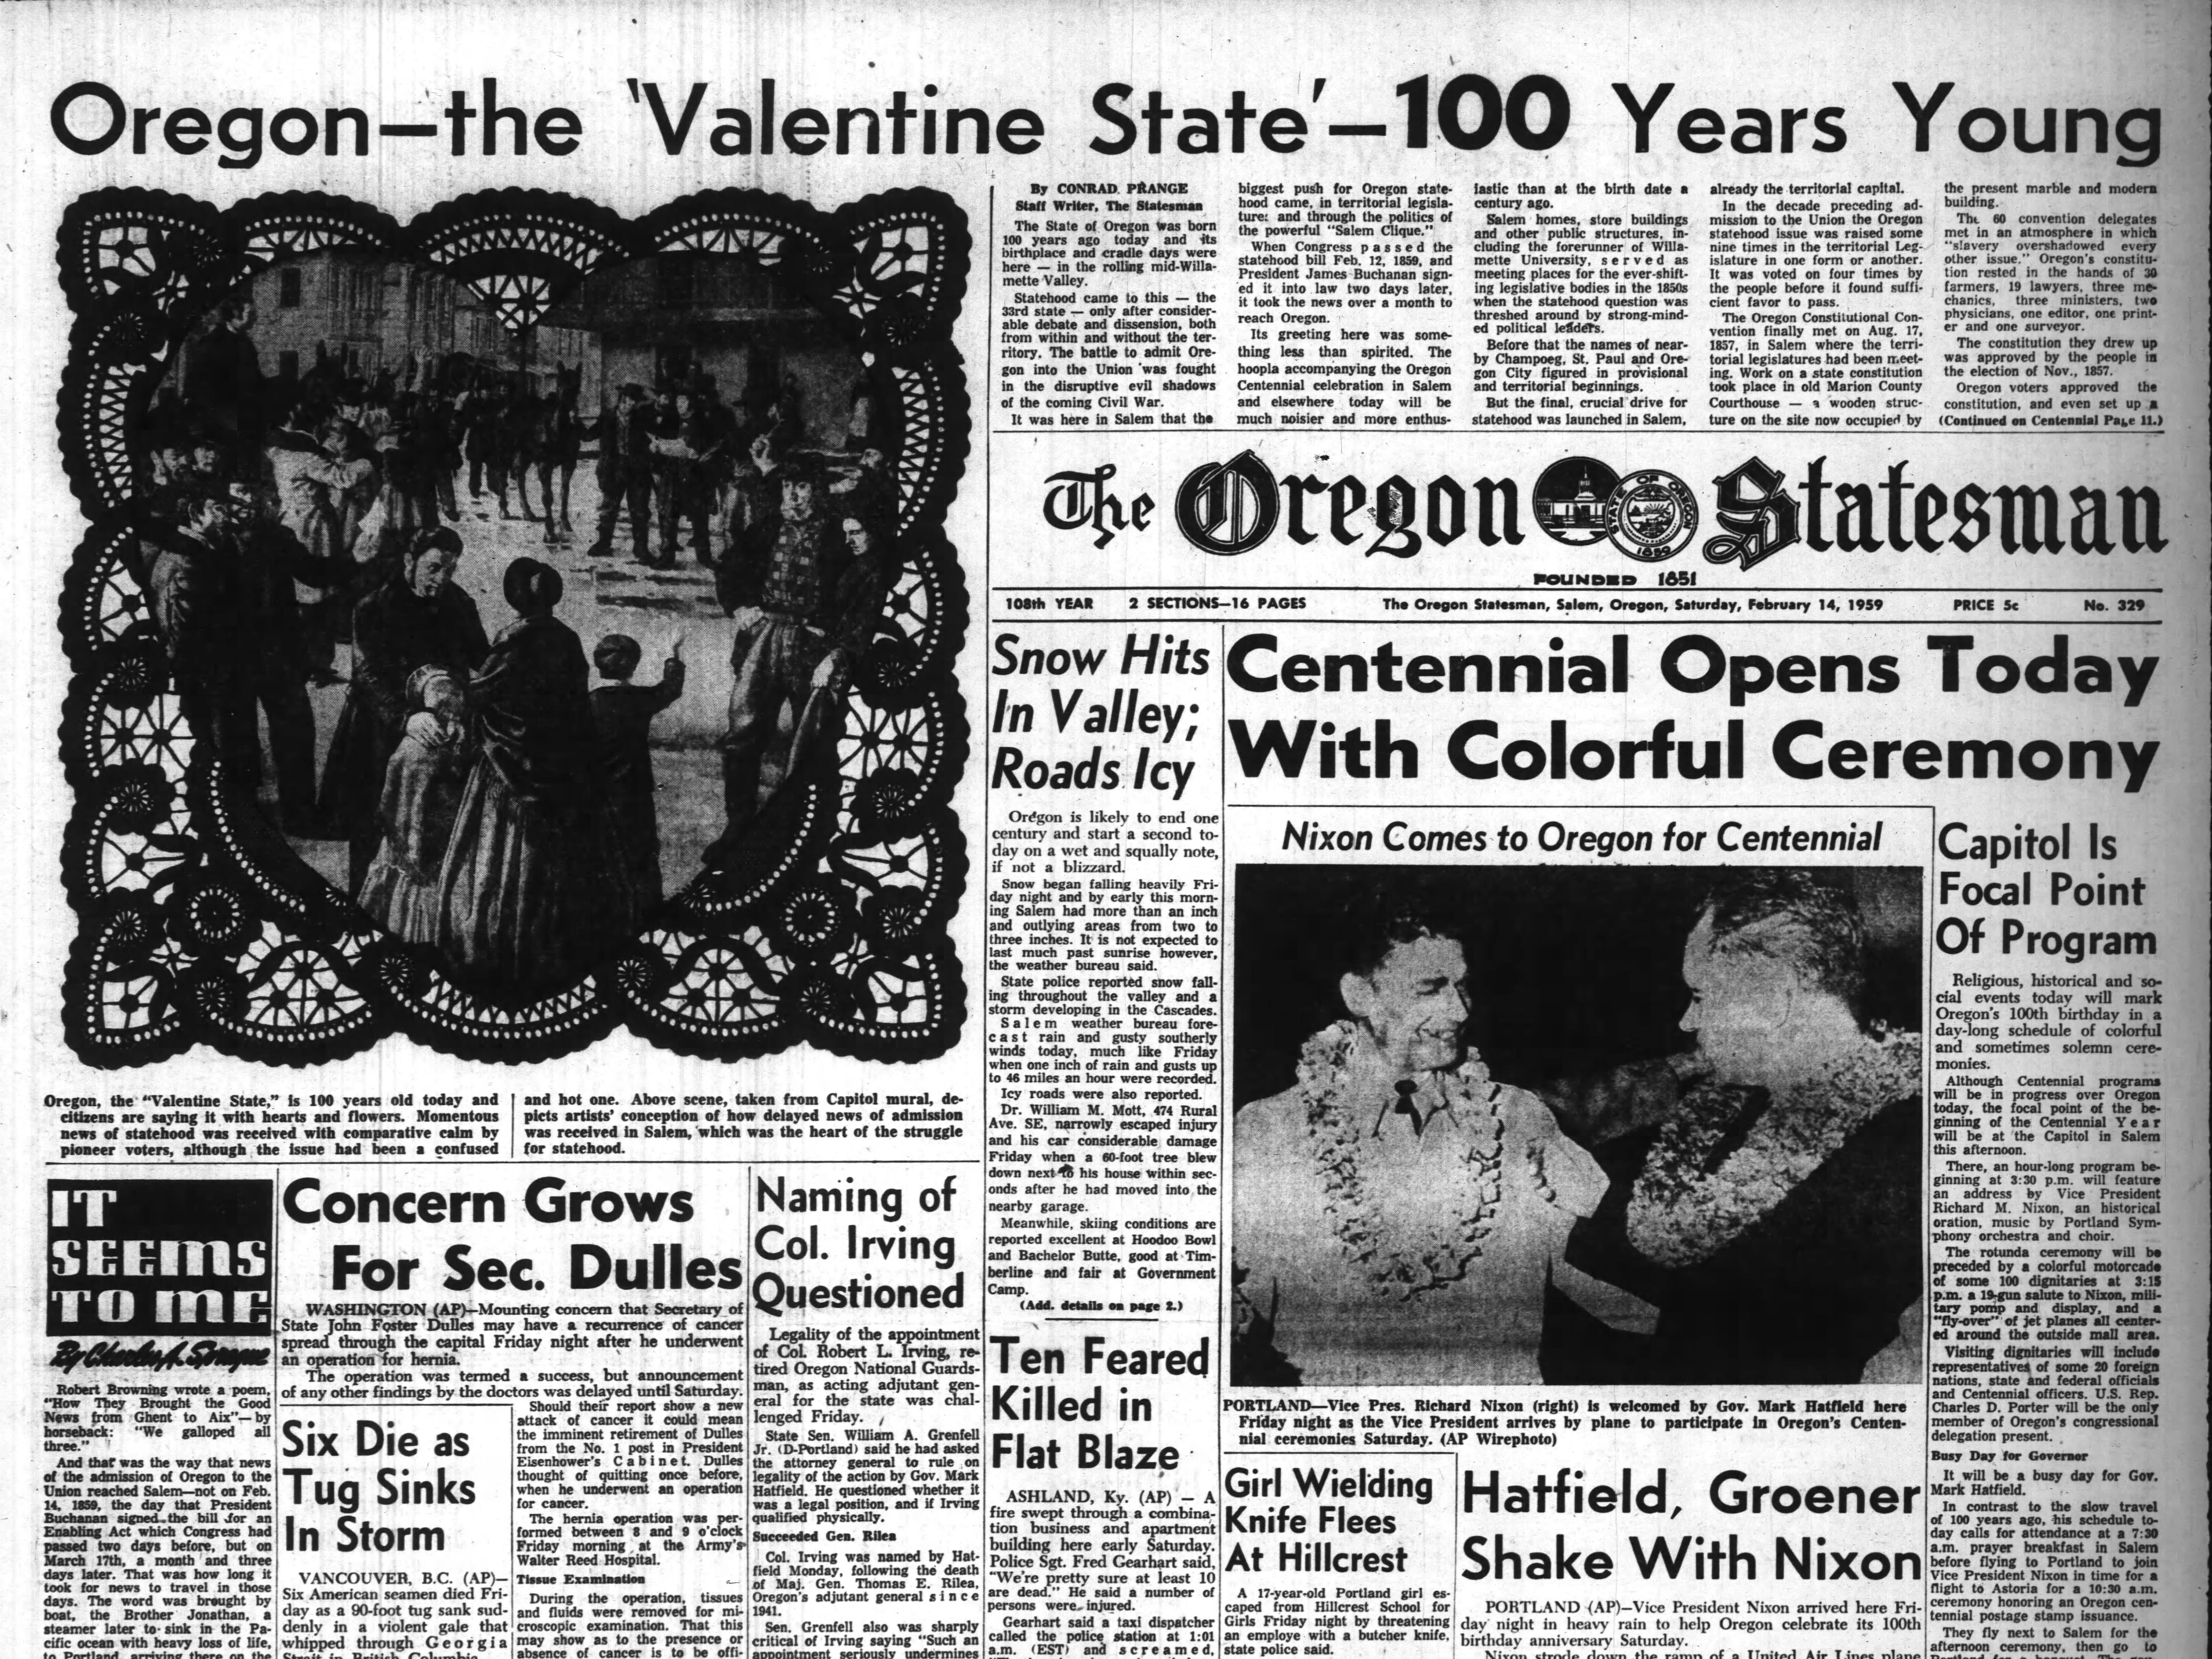 The Oregon Statesman front page from Feb. 14, 1959, the day of Oregon's centennial.